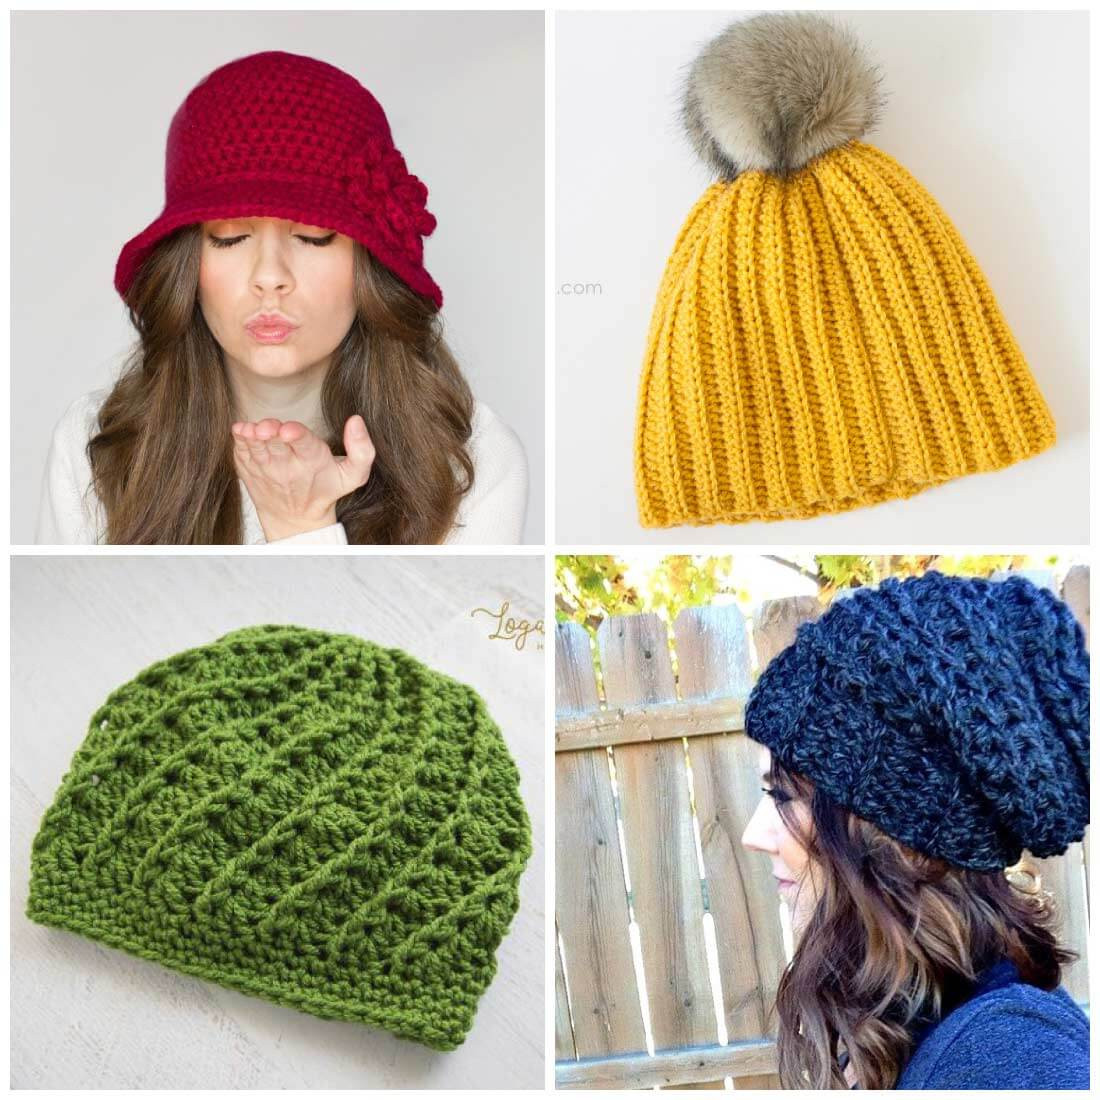 Crochet Beanie Pattern Elegant Free Crochet Hat Patterns Daisy Cottage Designs Of Luxury 43 Pics Crochet Beanie Pattern